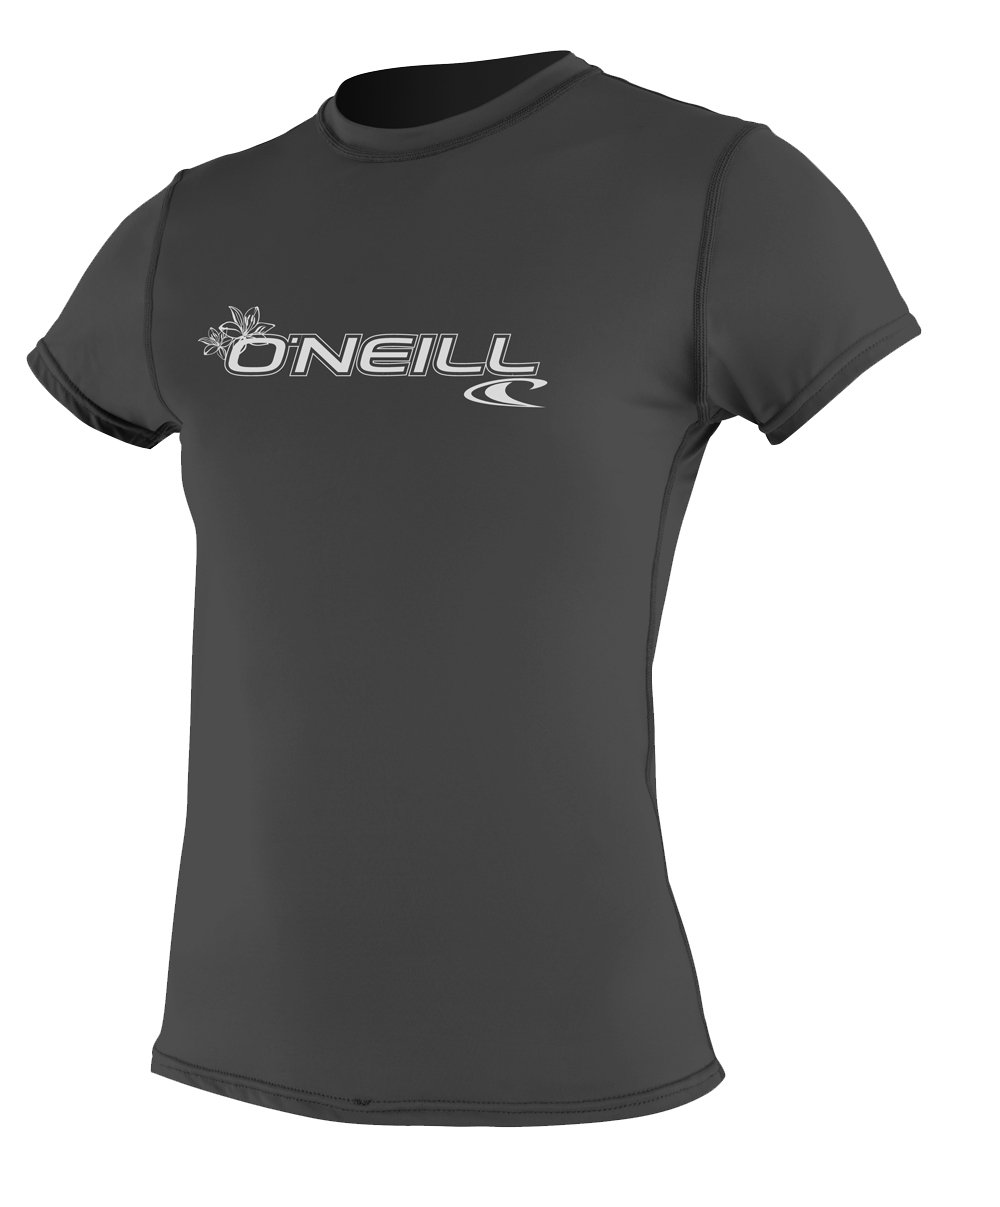 O'Neill  Women's Basic Skins Upf 50+ Short Sleeve Sun Shirt, Black, Large by O'Neill Wetsuits